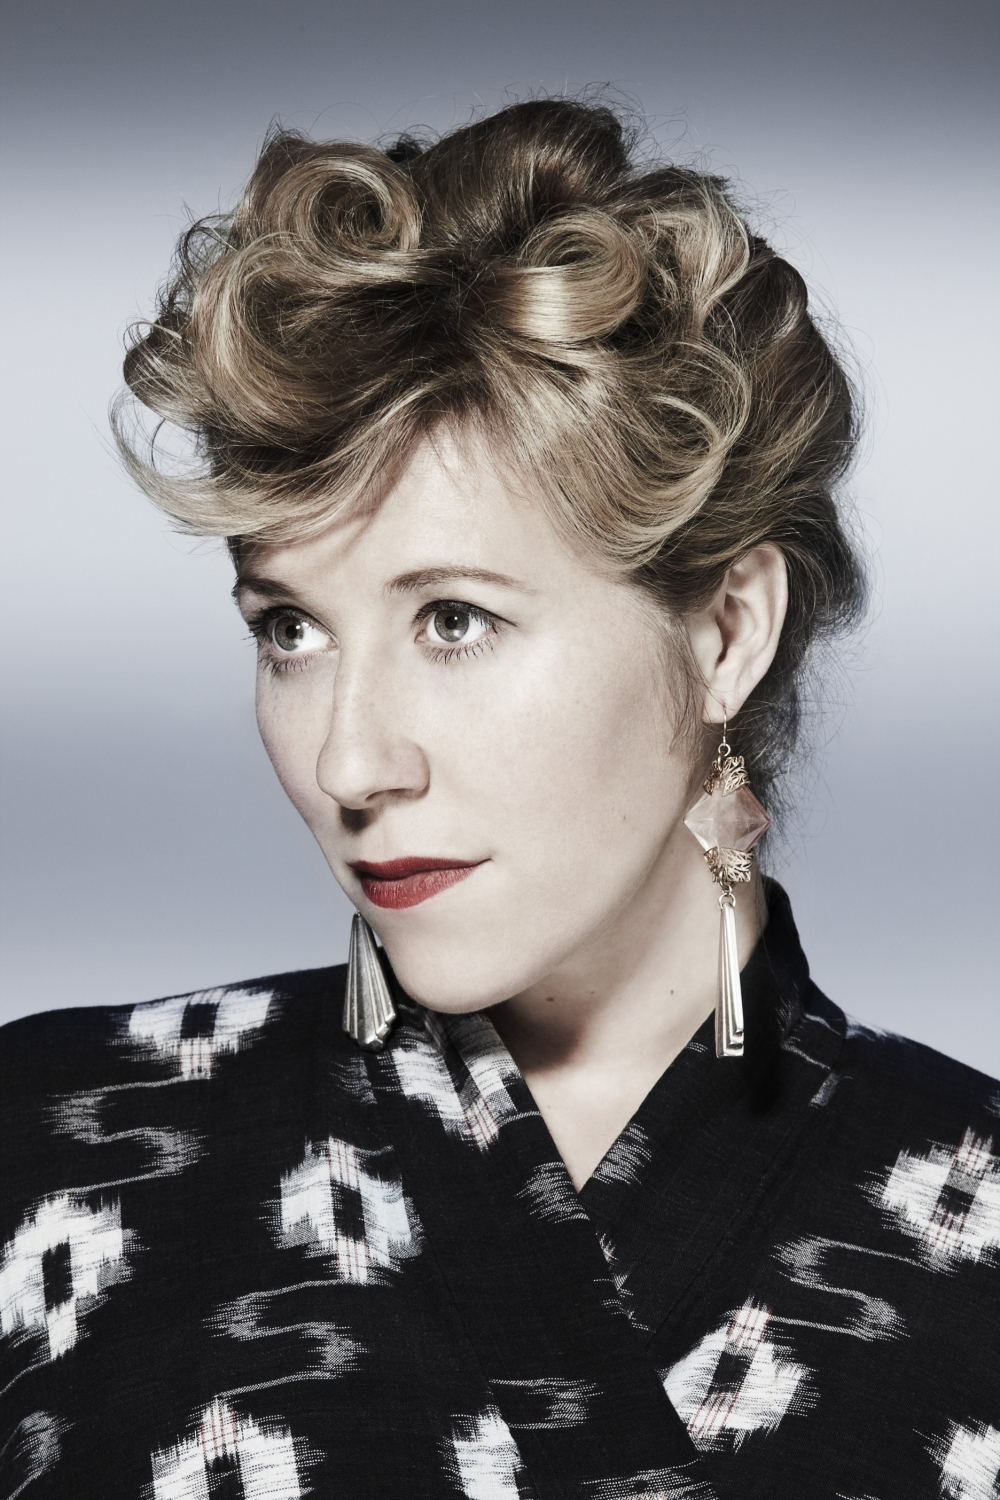 Martha Wainwright and They Might Be Giants among line-up for Celtic Connections 2016